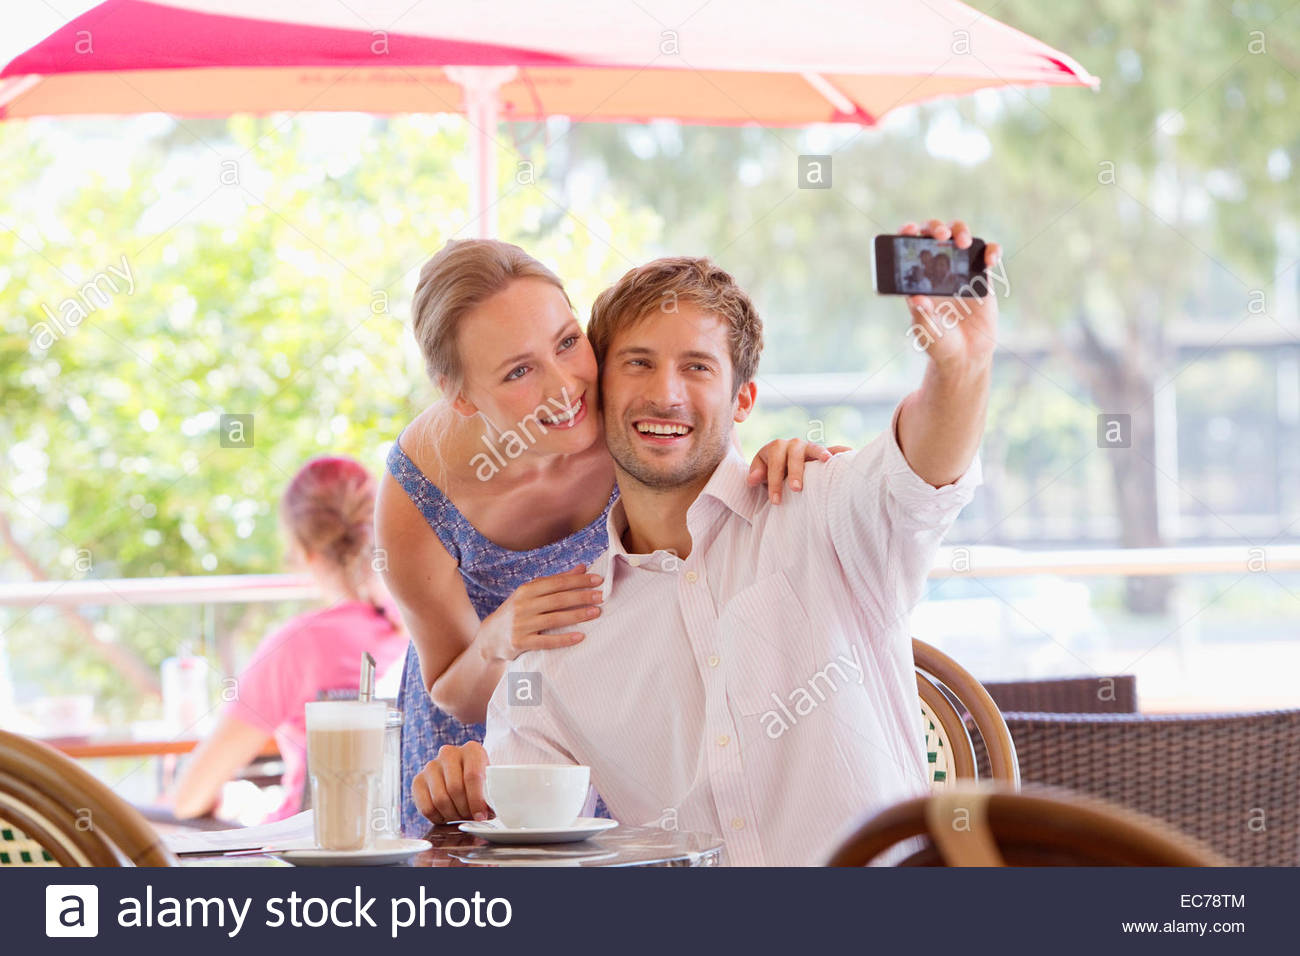 Couple taking selfie in outdoor cafe - Stock Image